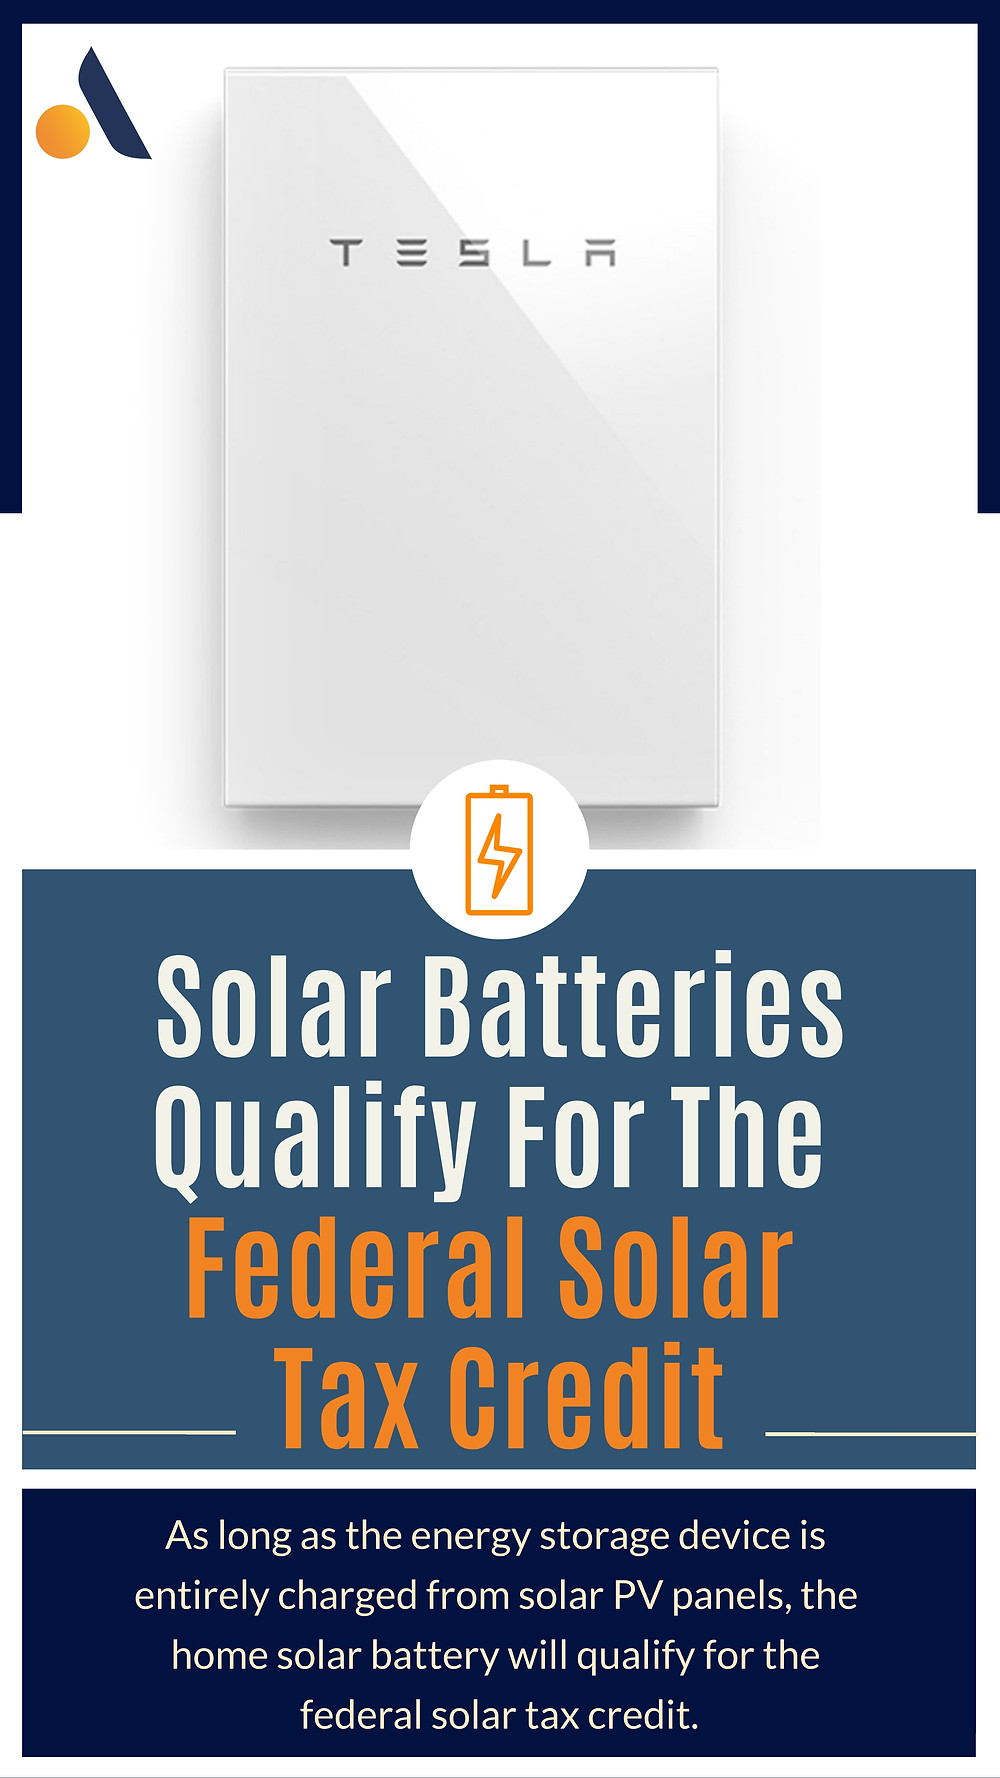 If the solar battery is fully charged with solar panels, the battery can qualify for the federal solar tax credit (ITC)